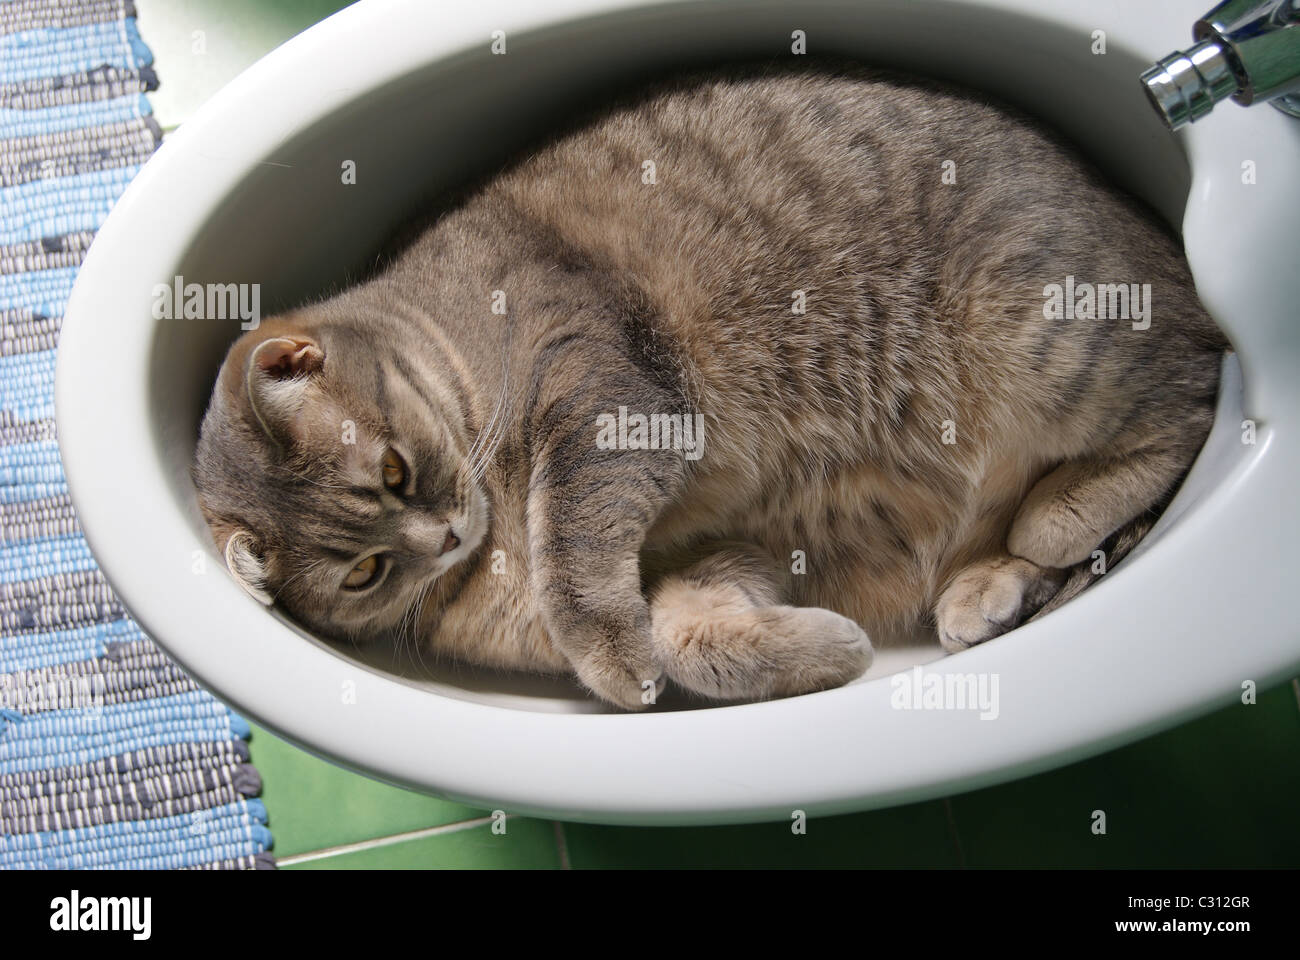 Bidet Funny High Resolution Stock Photography And Images Alamy